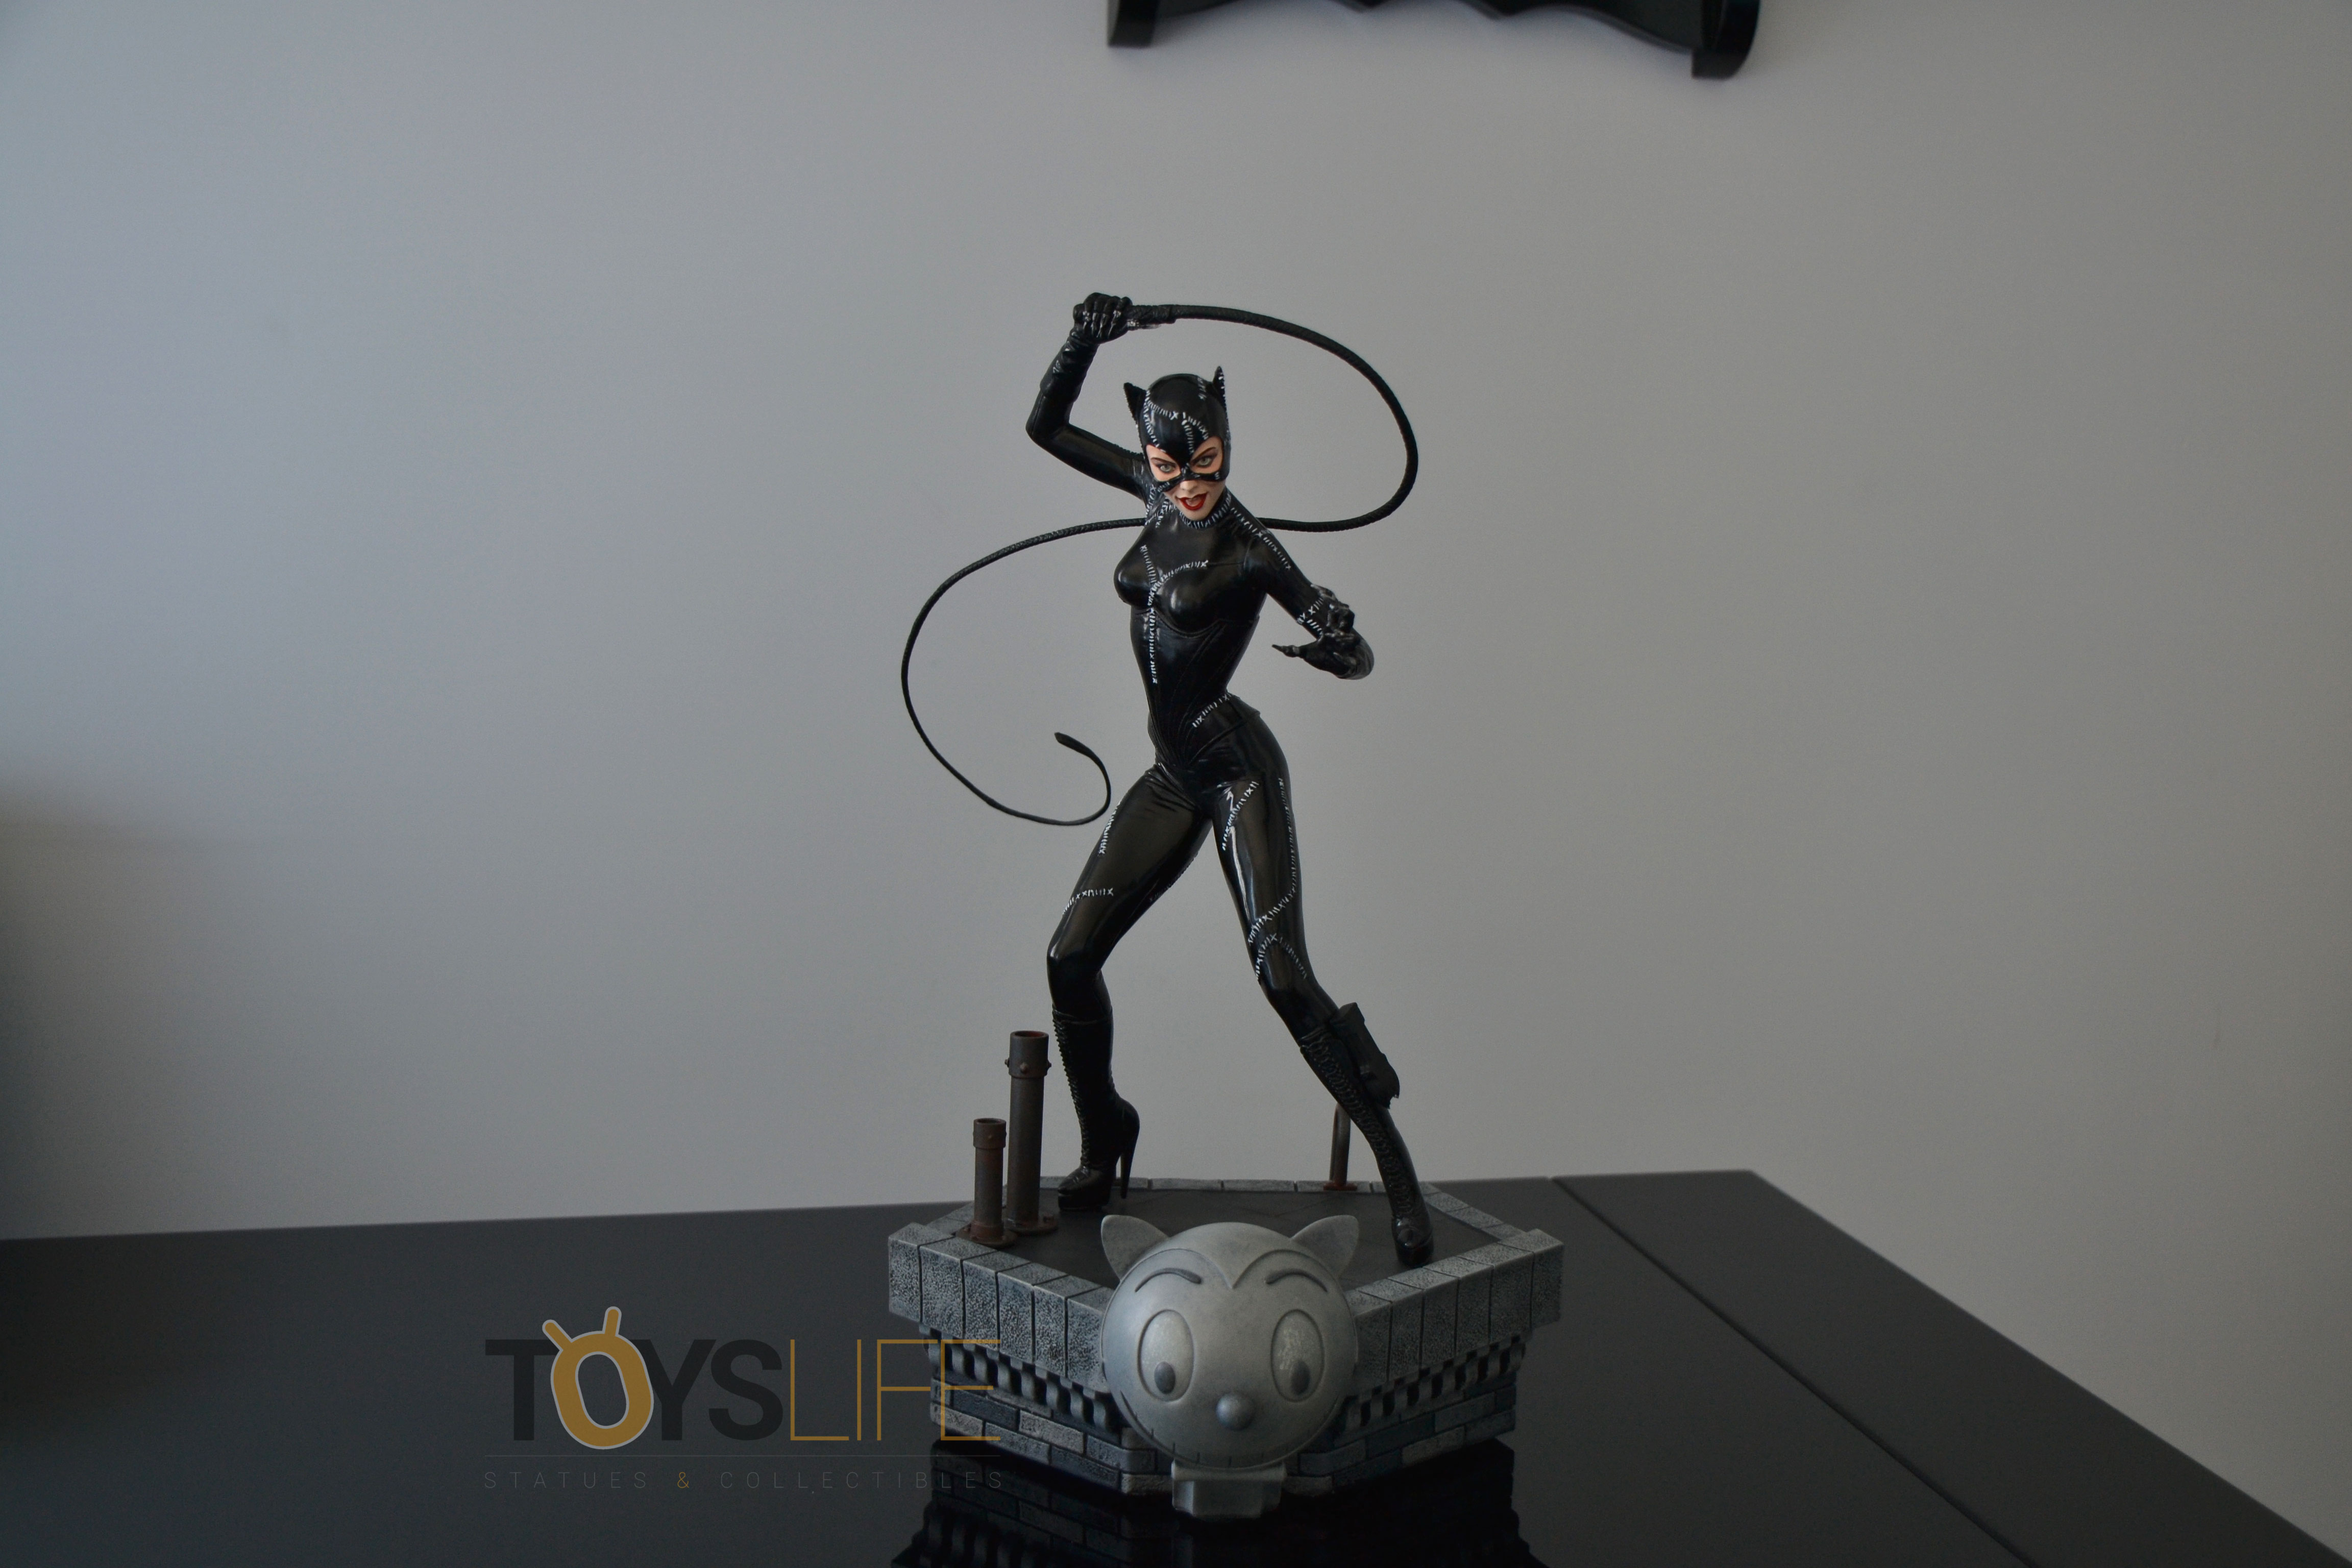 tweeterhead-catwoman-michelle-pfeiffer-maquette-toyslife-review-27